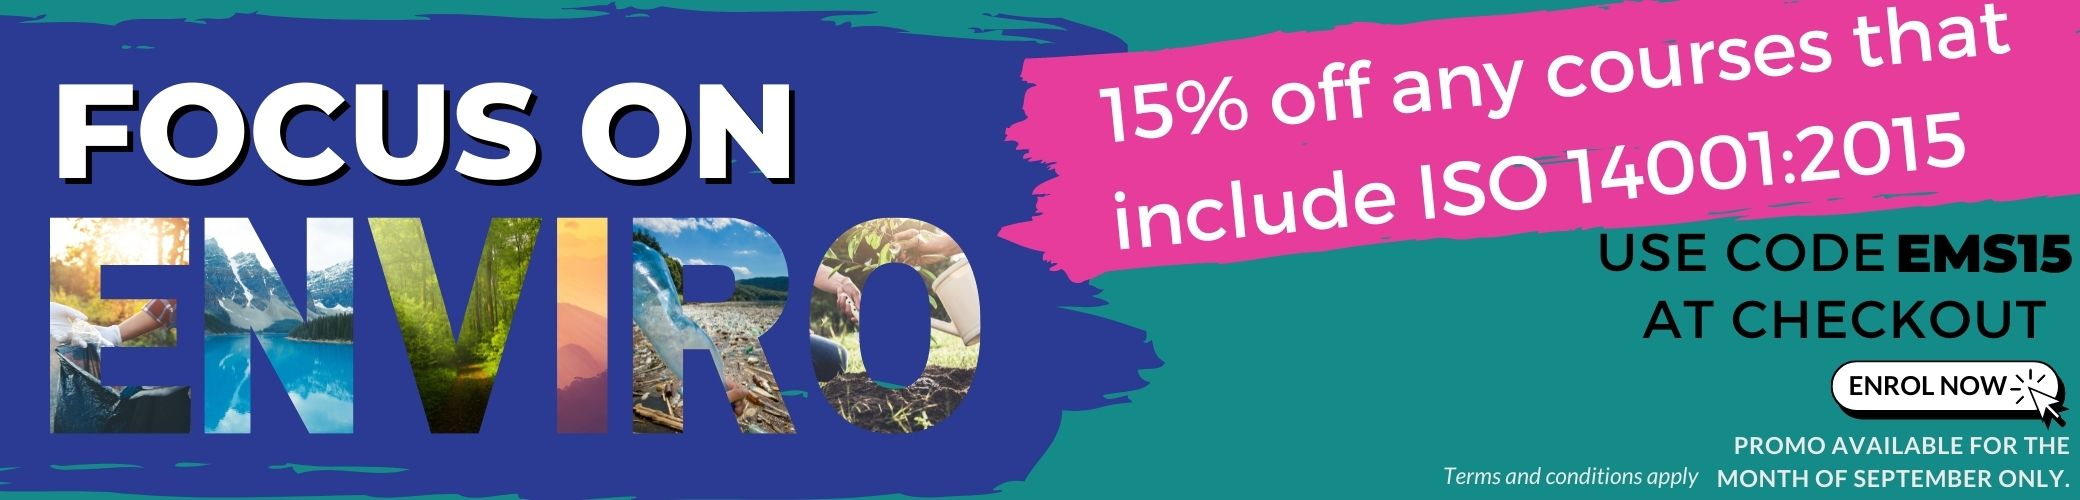 Focus on Enviro - 15% off Any course that includes ISO 14001:2015